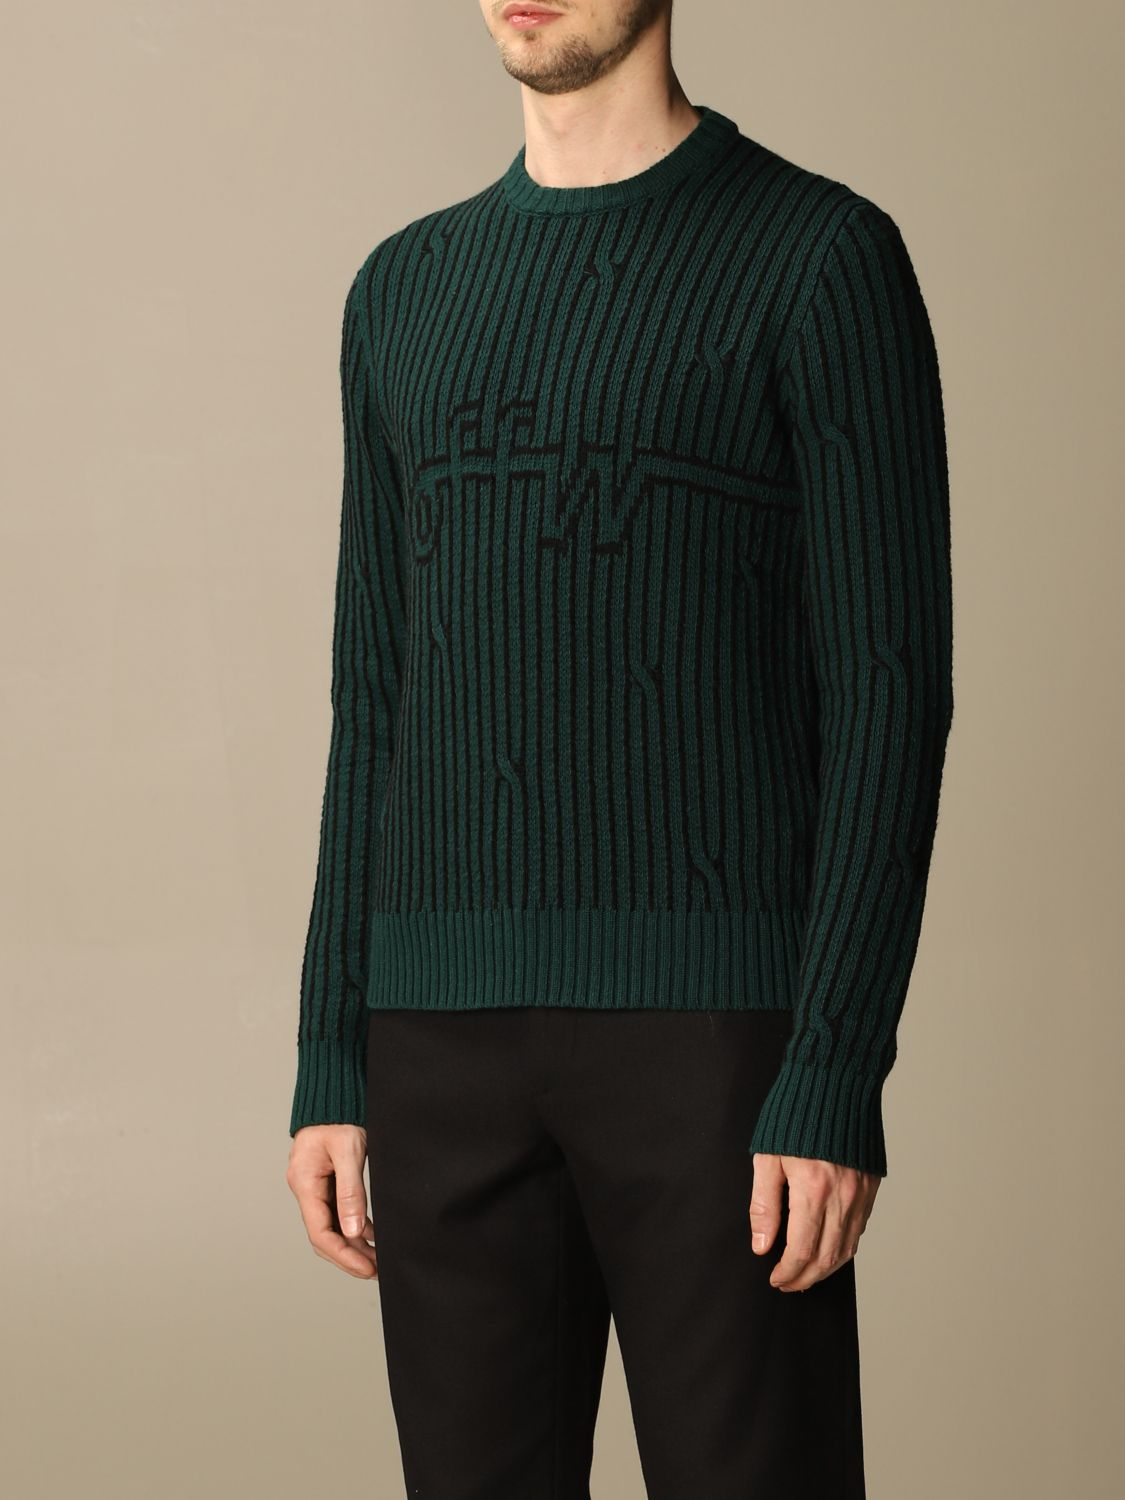 Sweater Off White: Off White men's sweater green 3